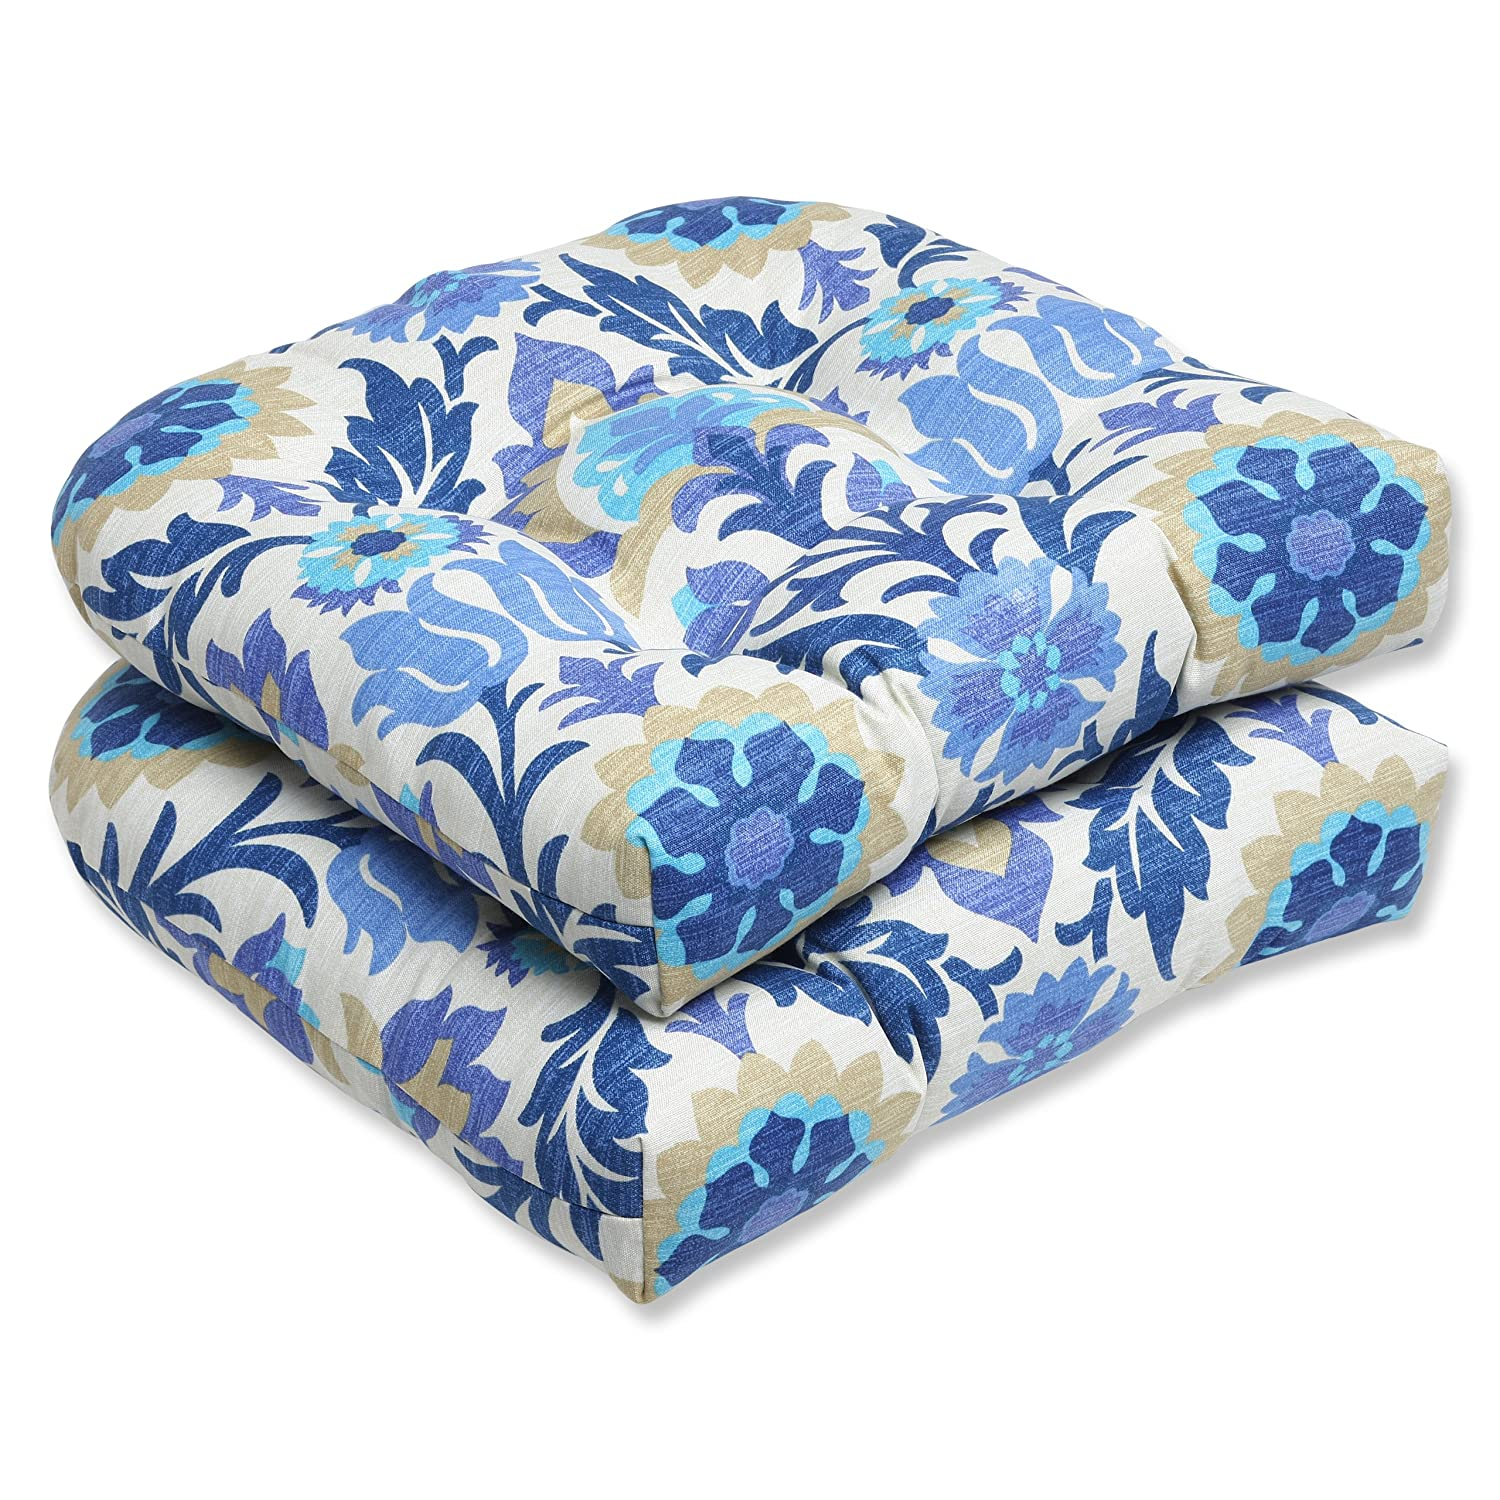 Pillow Perfect Outdoor Santa Maria Wicker Seat Cushion, Azure, Set of 2